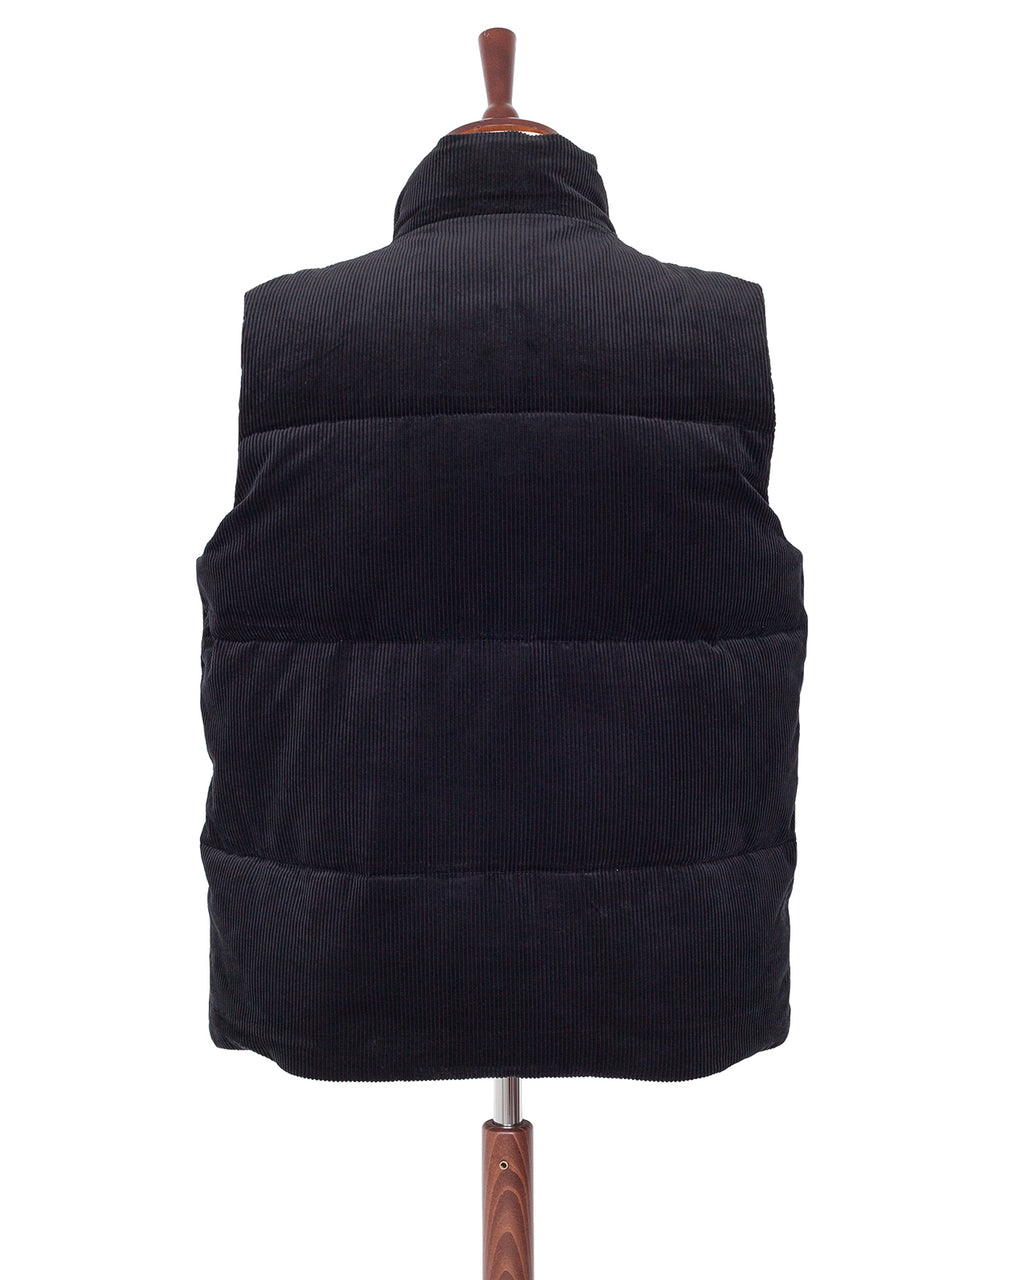 Weirdo Corduroy Down Vest, Black